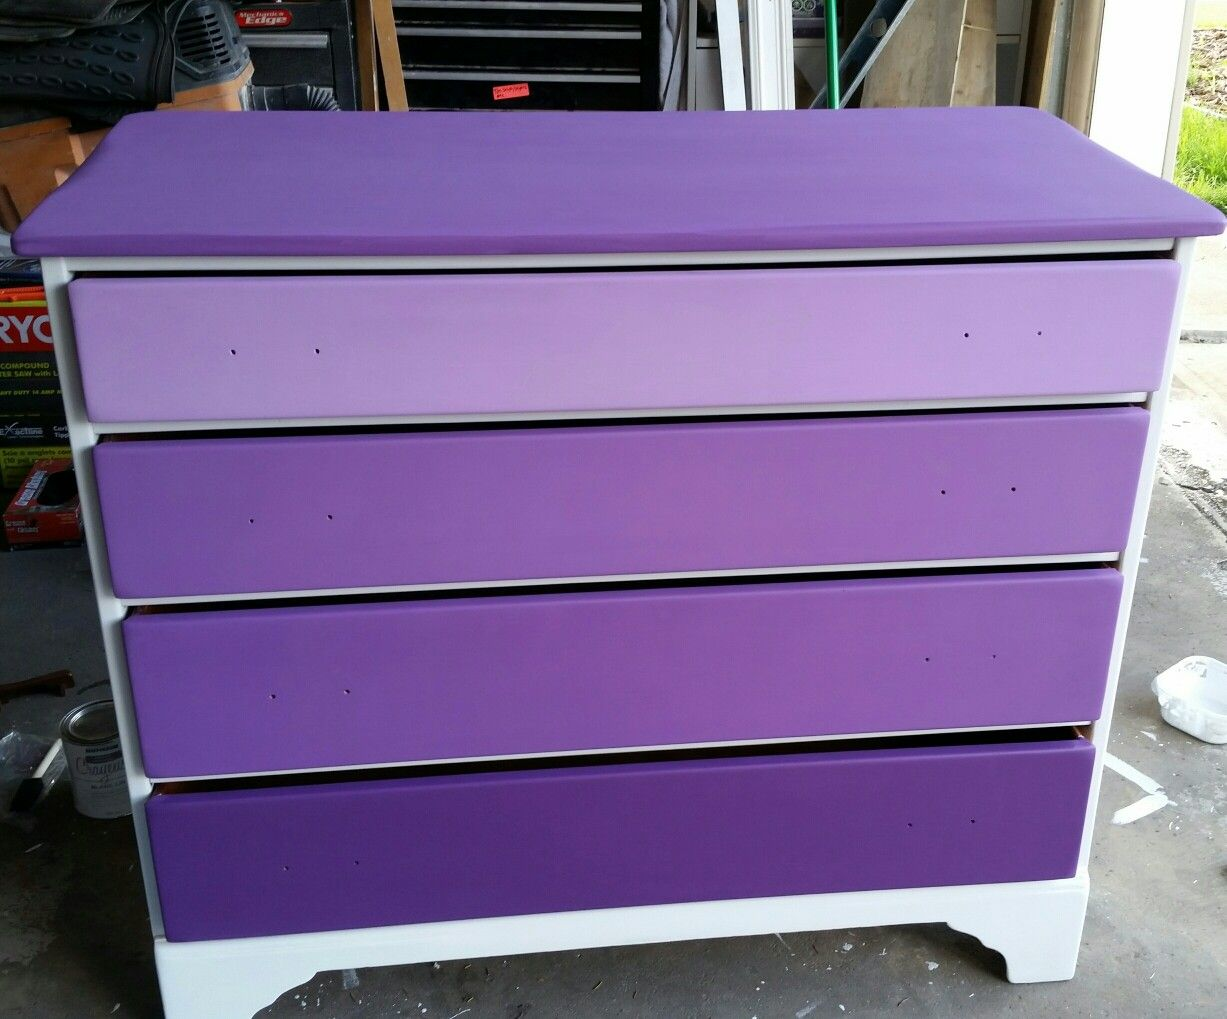 The white and purple dresser without the handles put back on art